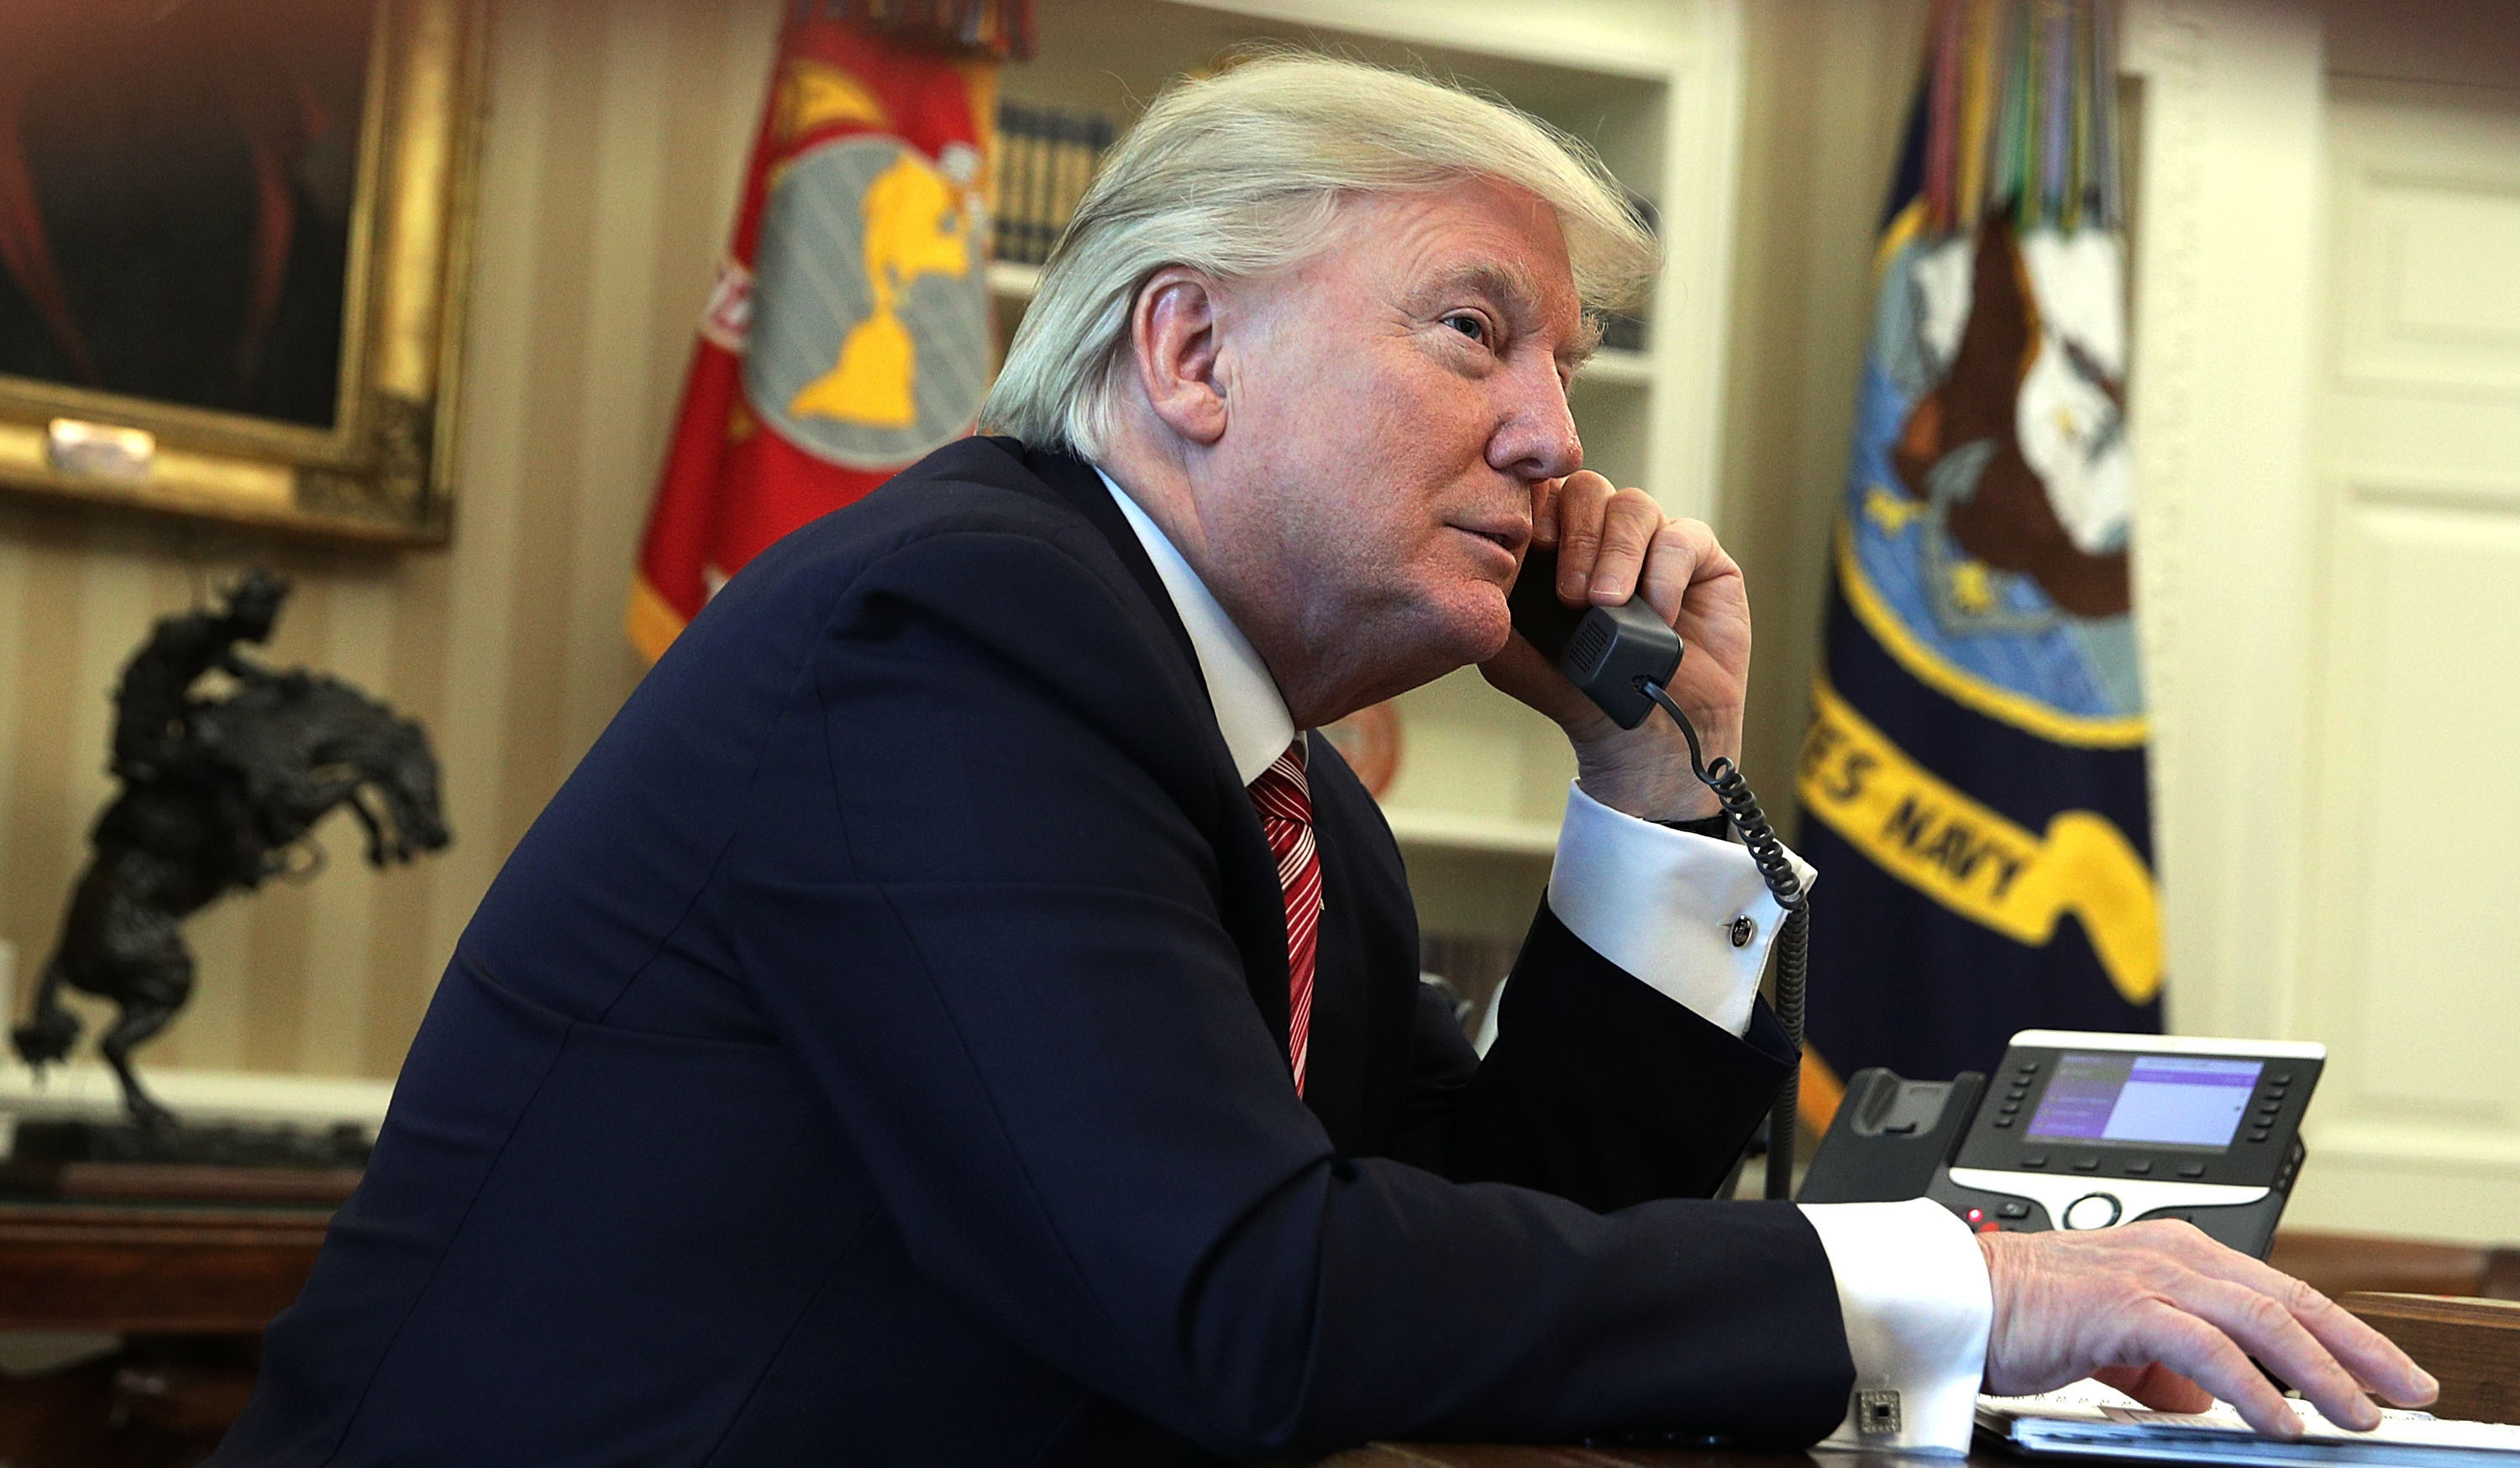 WASHINGTON, DC - JUNE 27:  U.S. President Donald Trump speaks on the phone with Irish Prime Minister Leo Varadkar on the phone in the Oval Office of the White House June 27, 2017 in Washington, DC. President Trump congratulated Prime Minister Varadkar to become the new leader of Ireland.  (Photo by Alex Wong/Getty Images)